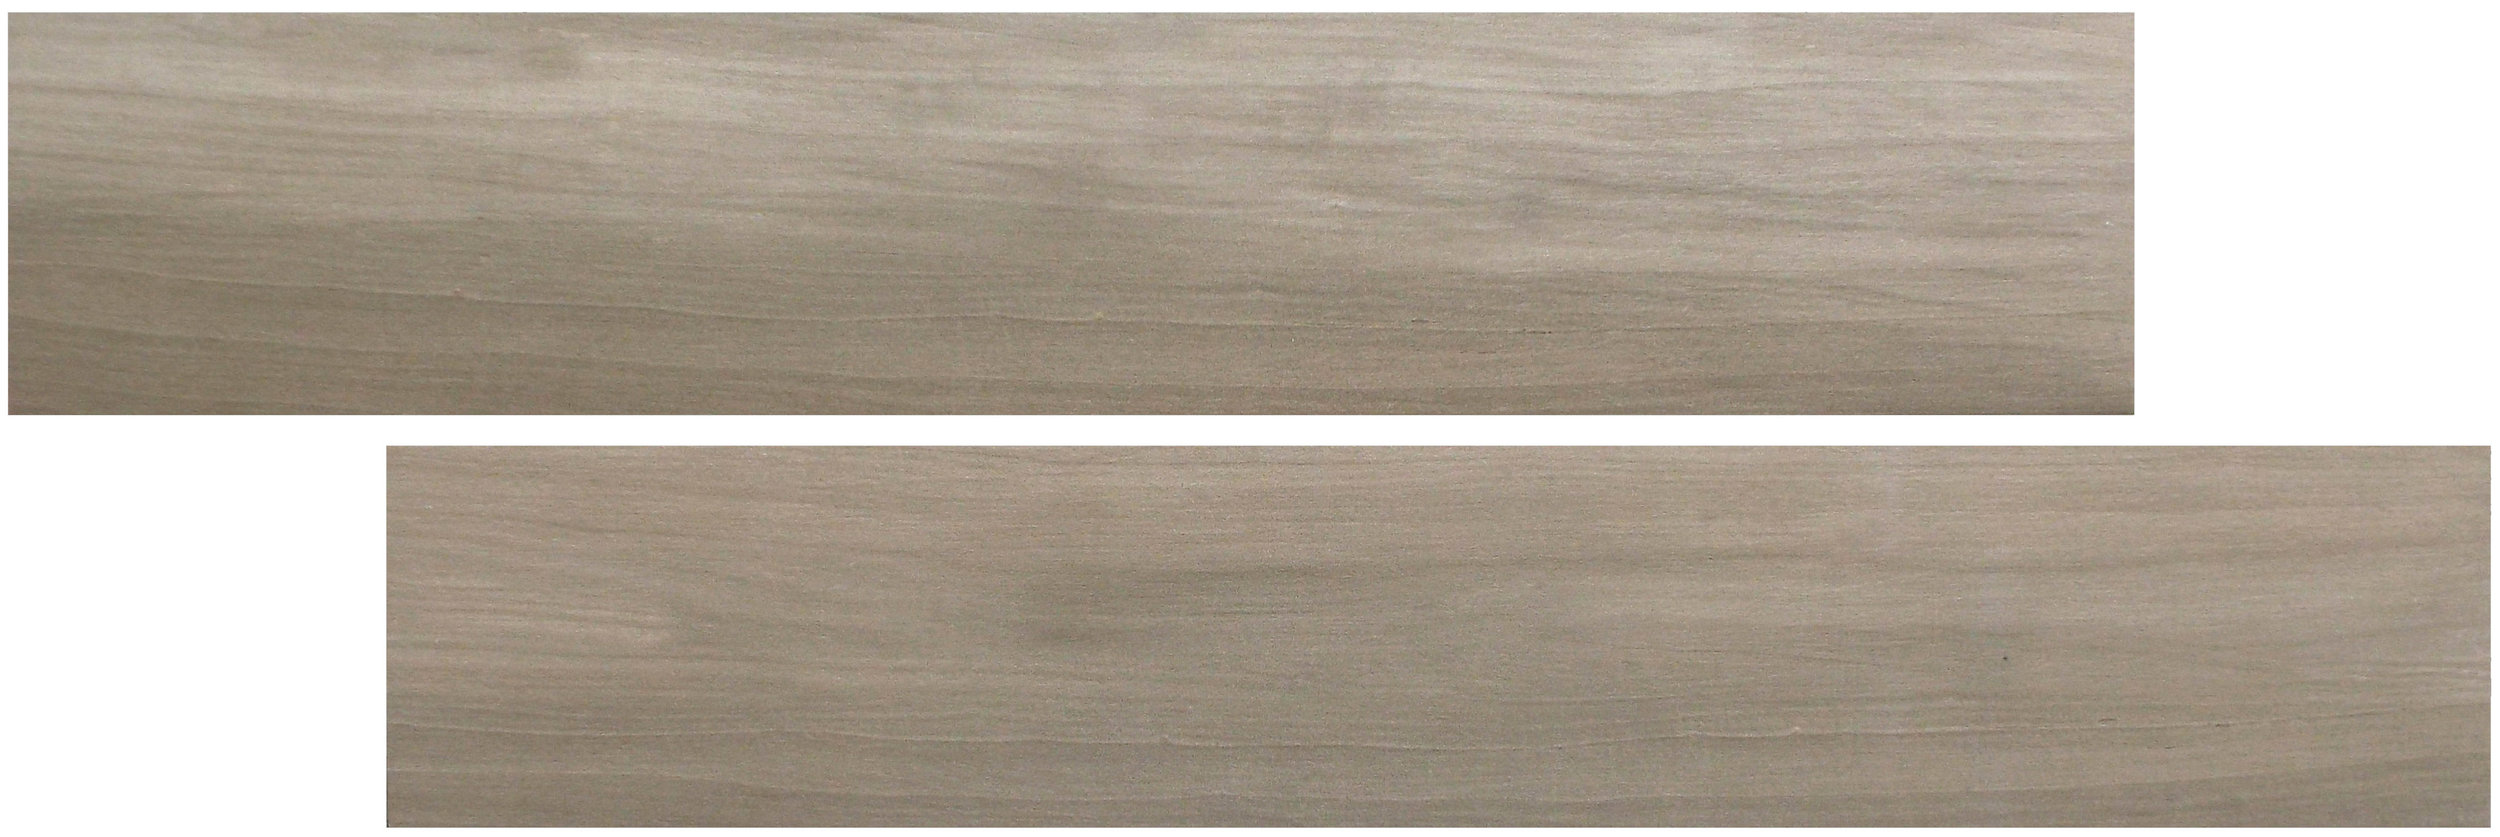 "Jatoba  9""x48"" Porcelain[2 pieces shown]"